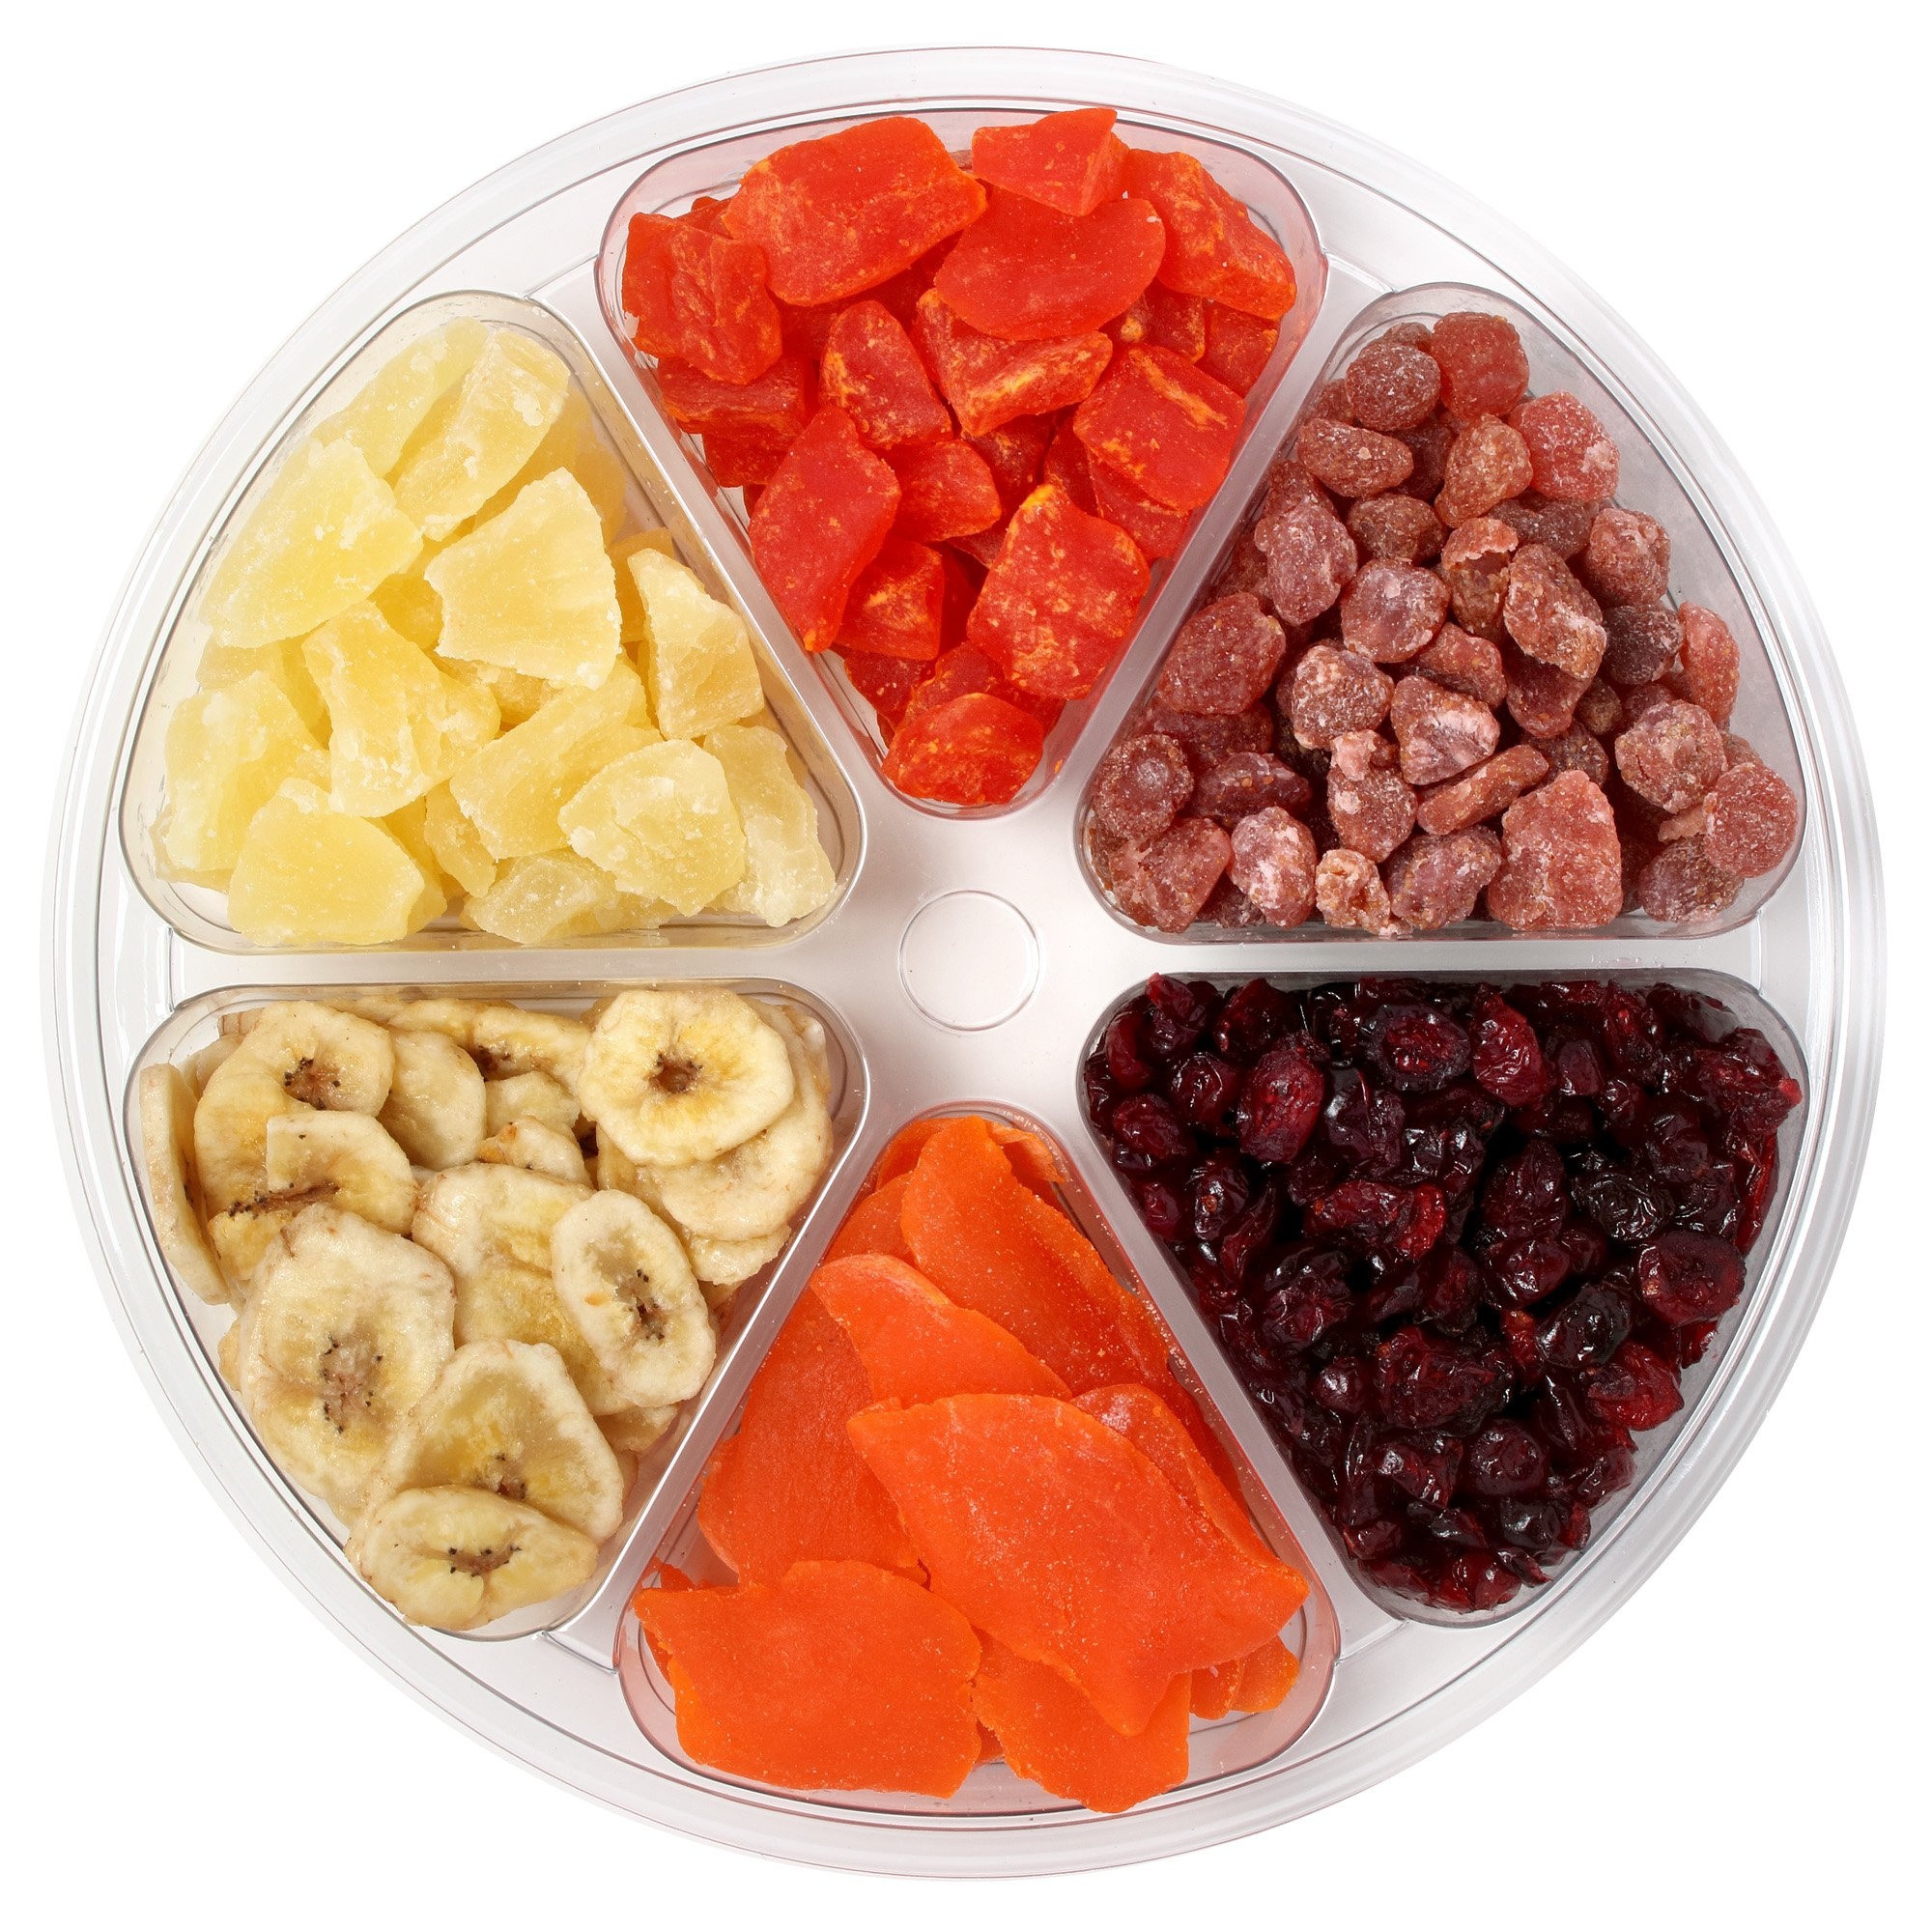 Sincerely Nuts Tropical Dried Mixed Fruit Tray   Kosher Certified Papaya Chunks, Pineapple Tidbits, Strawberries, Banana Chips, Mango Slices, and Cranberries   Supremely Fresh